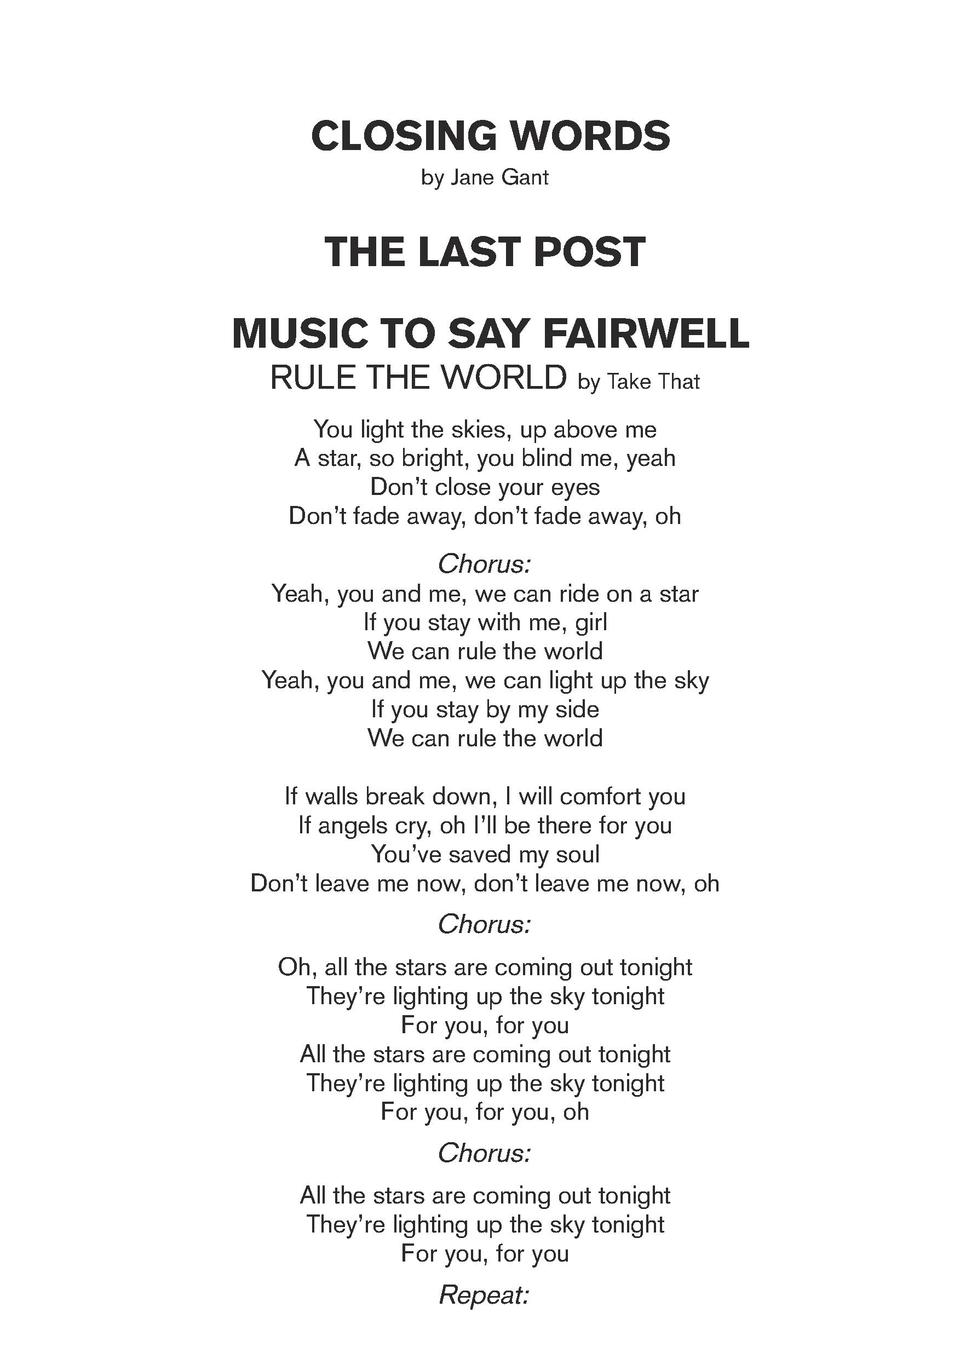 CLOSING WORDS by Jane Gant  THE LAST POST MUSIC TO SAY FAIRWELL RULE THE WORLD by Take That You light the skies, up above ...